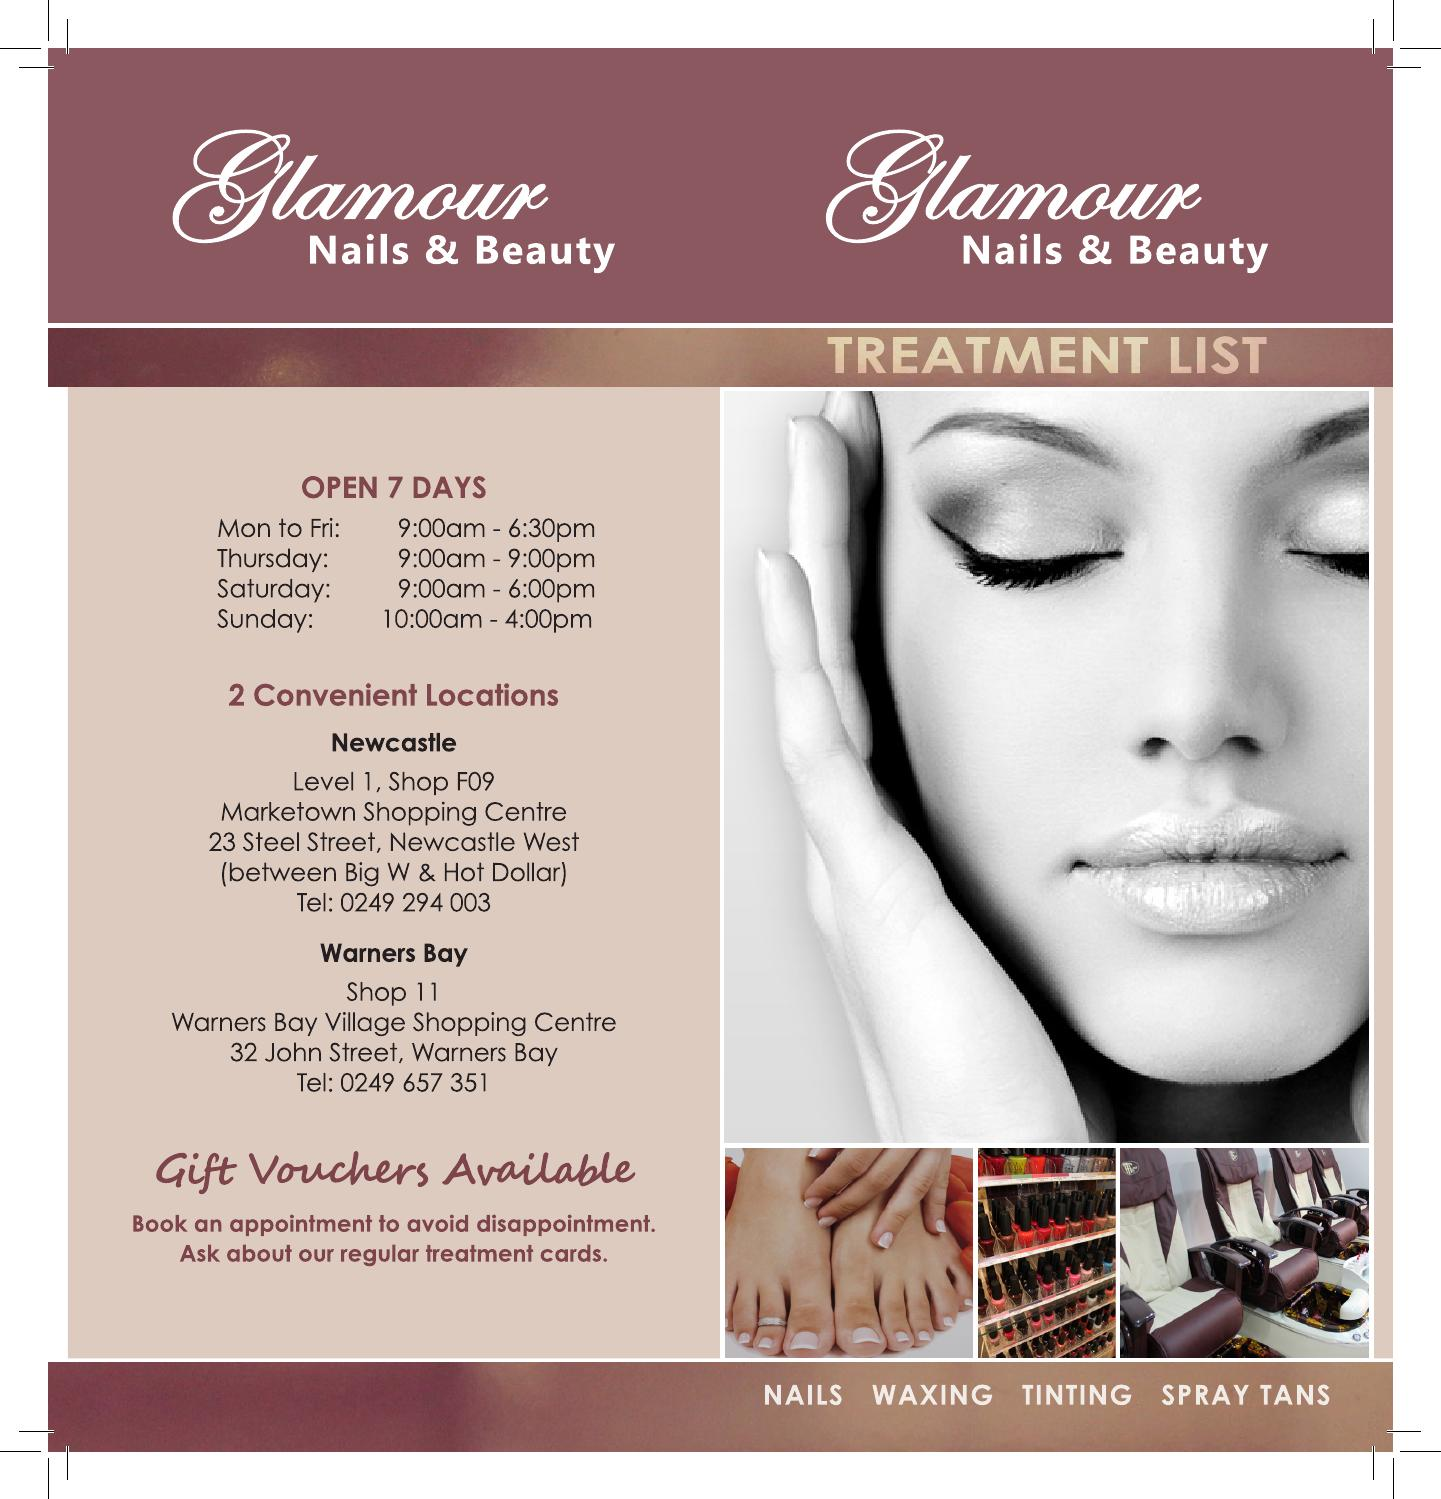 glamour nails & beauty